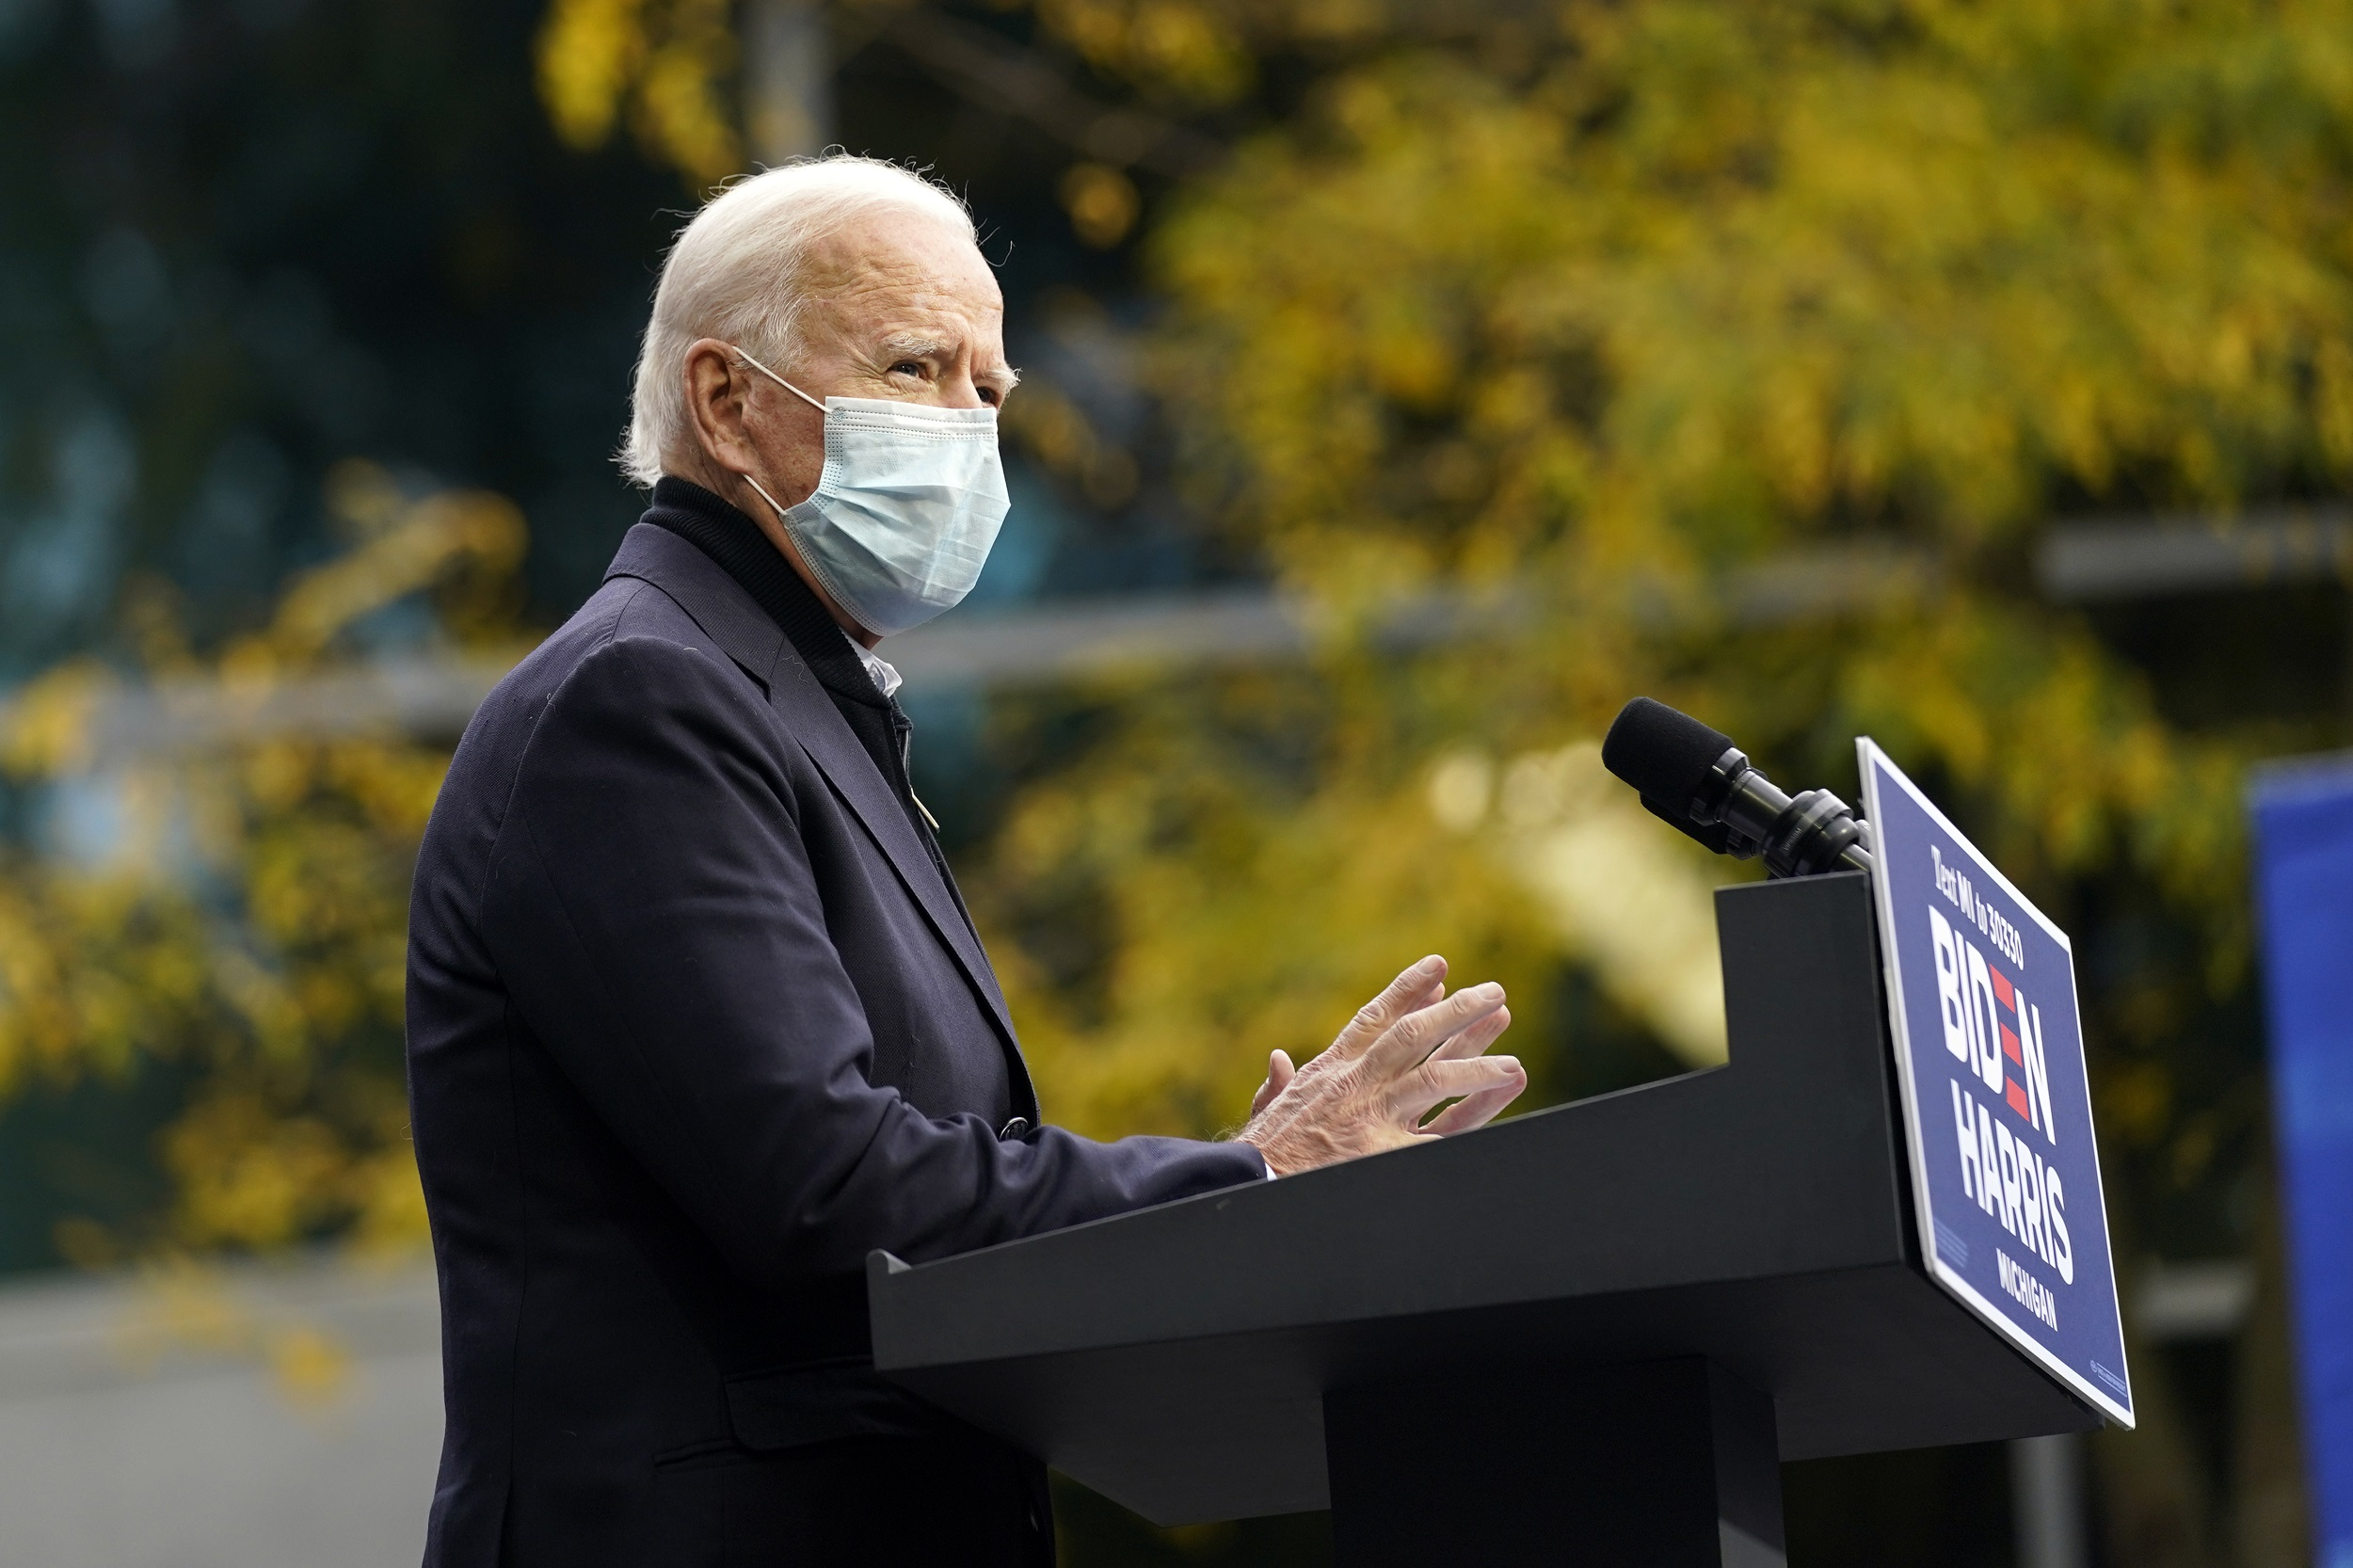 Biden Warns of Virus Threat at Michigan Campaign Stop